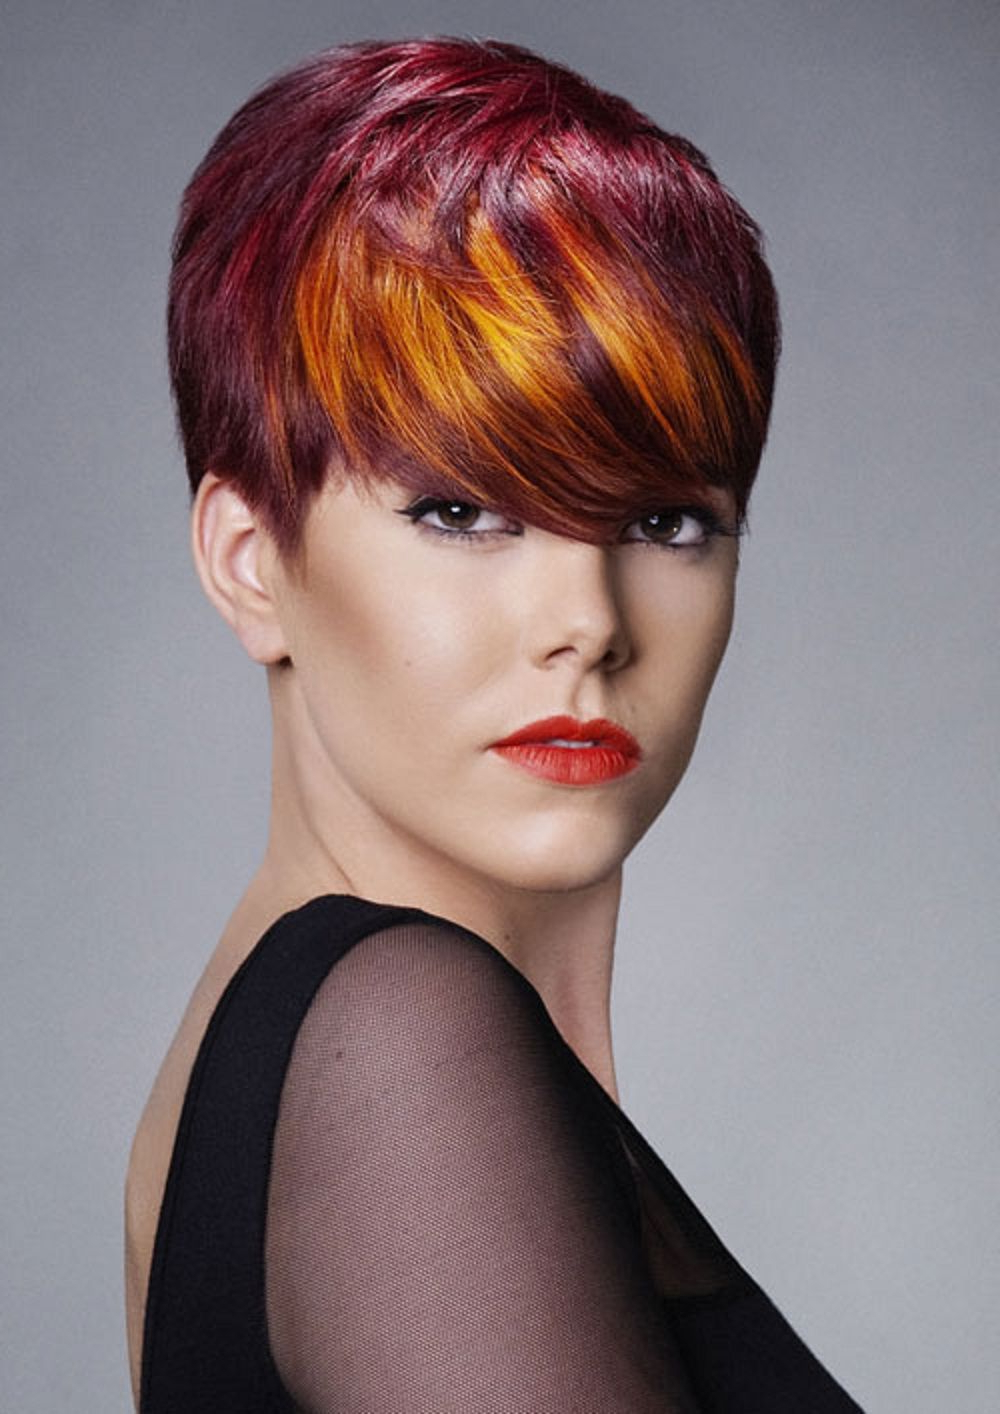 Red Hair Color For Short Hair | Hair Styles | Pinterest | Red Hair Regarding Short Hairstyles With Red Hair (View 14 of 25)